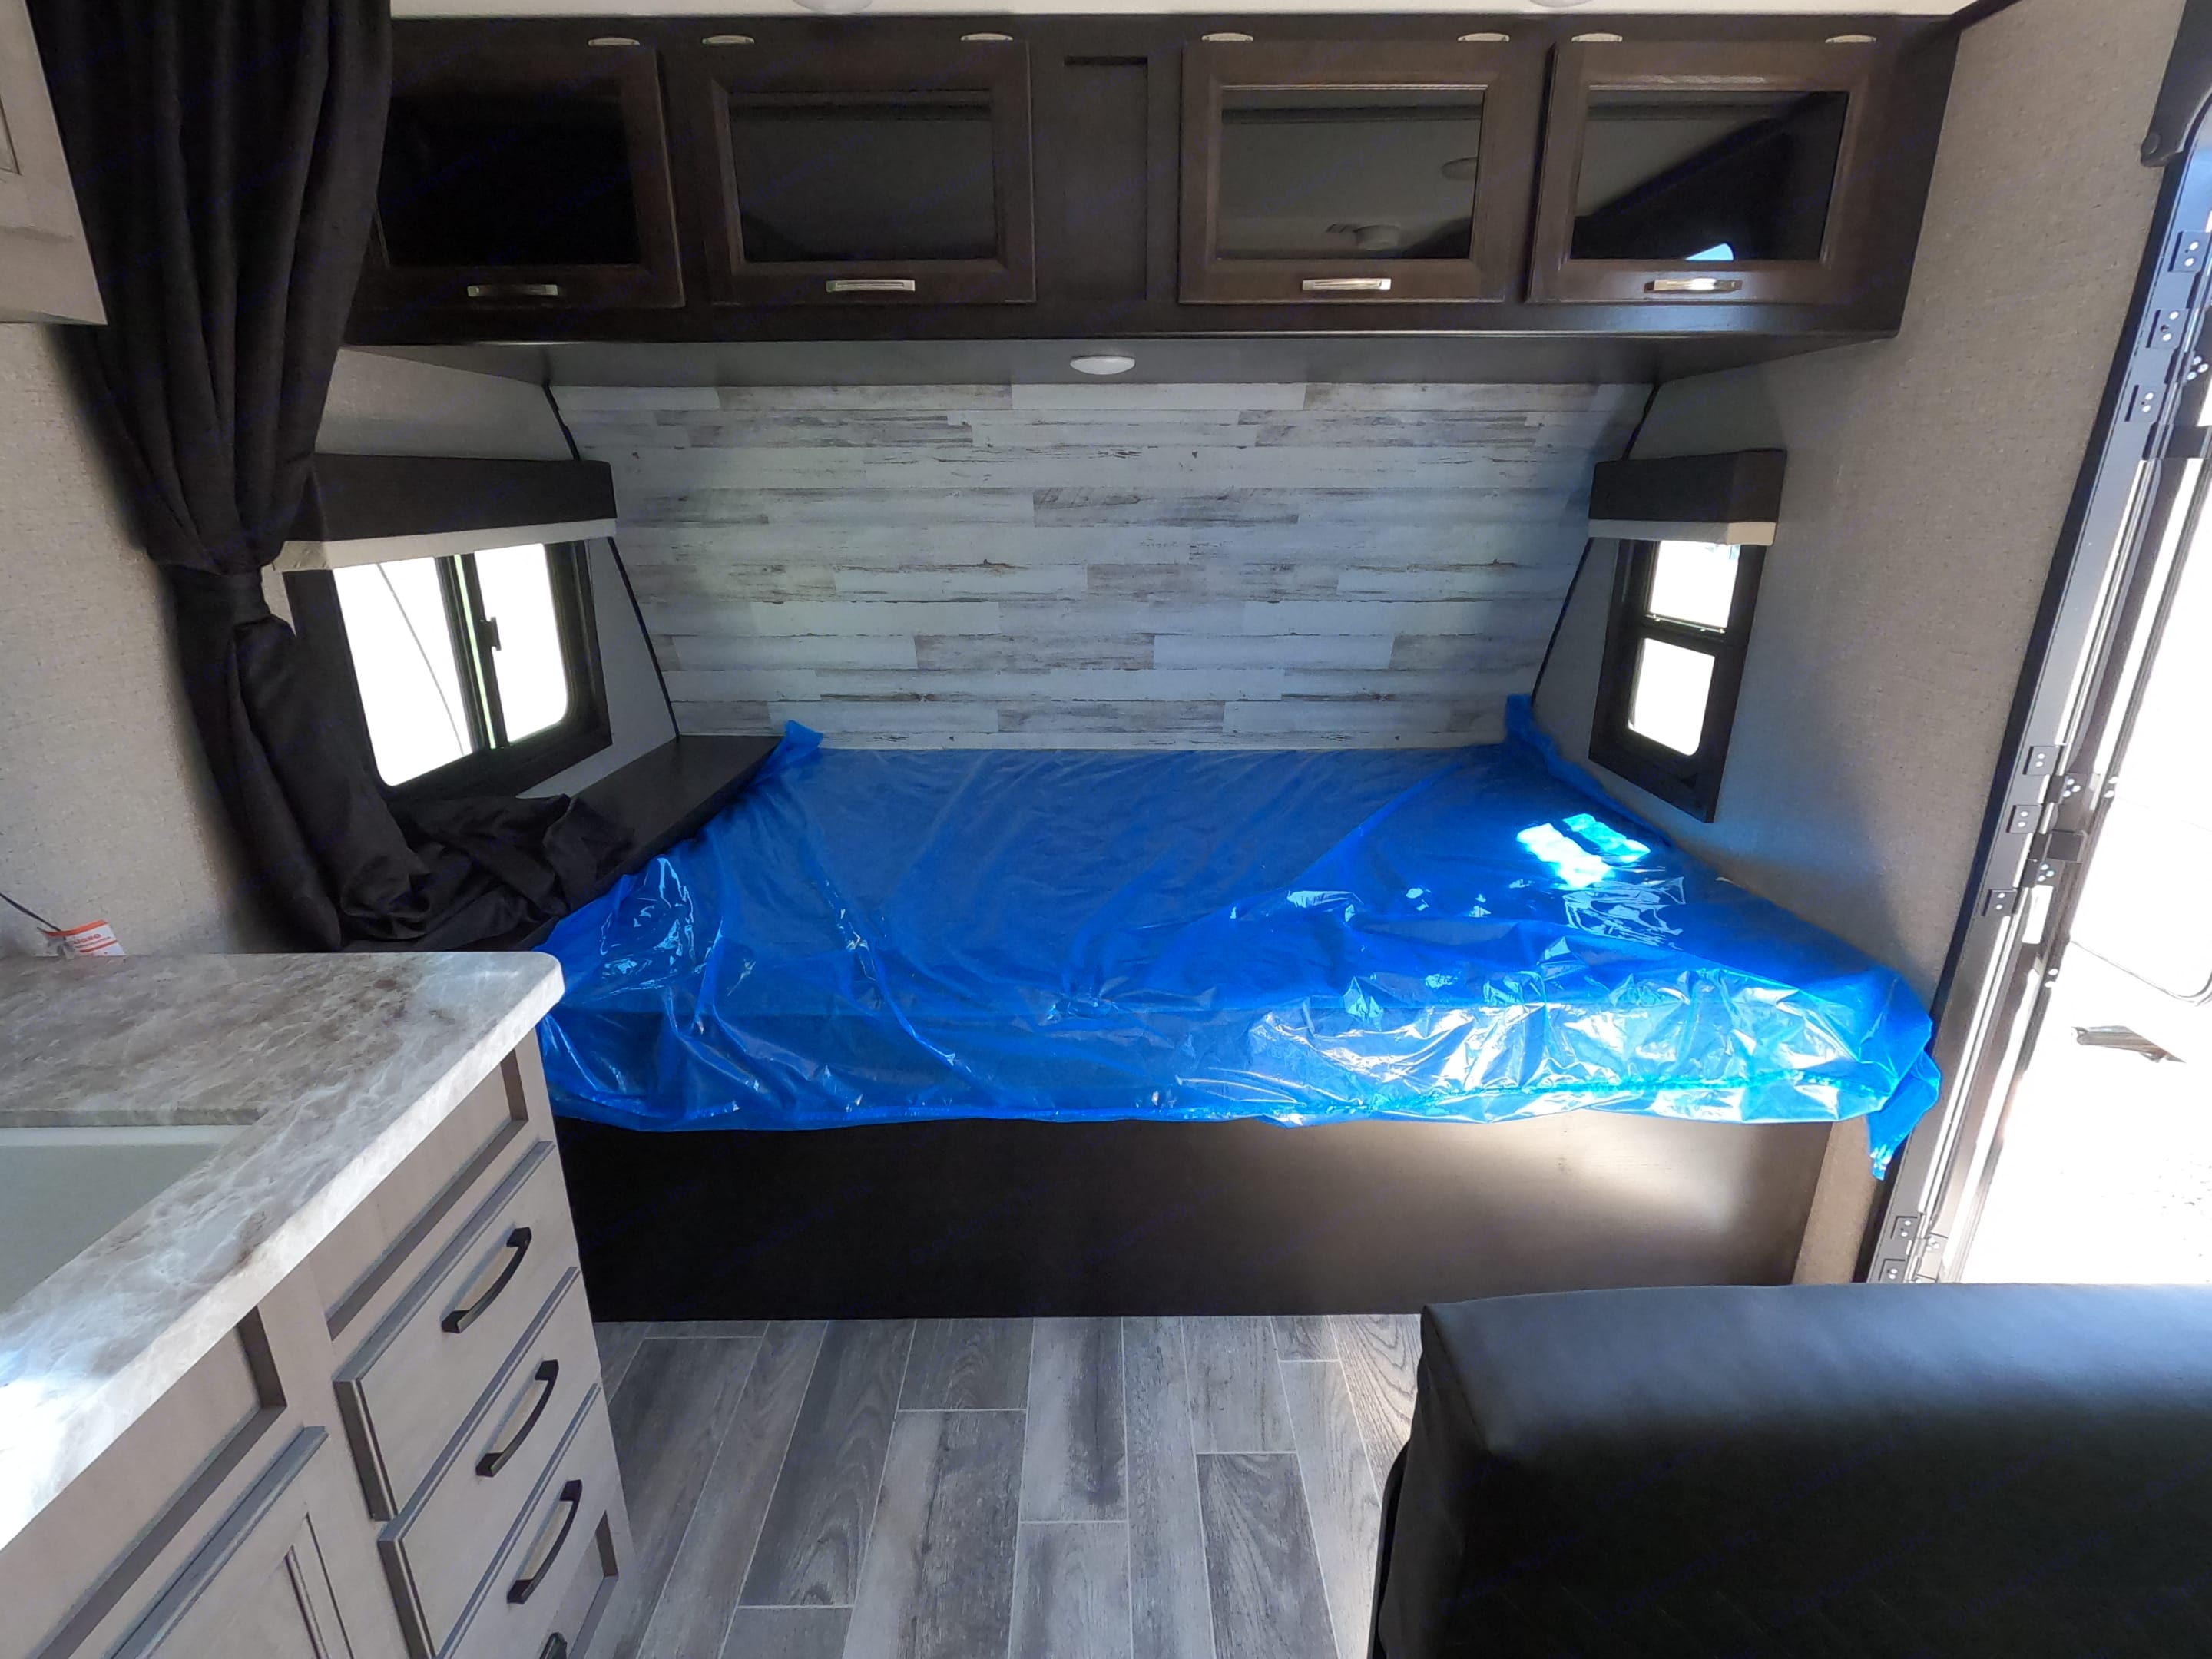 Queen Bed. Jayco Jay Feather 20BH 2021